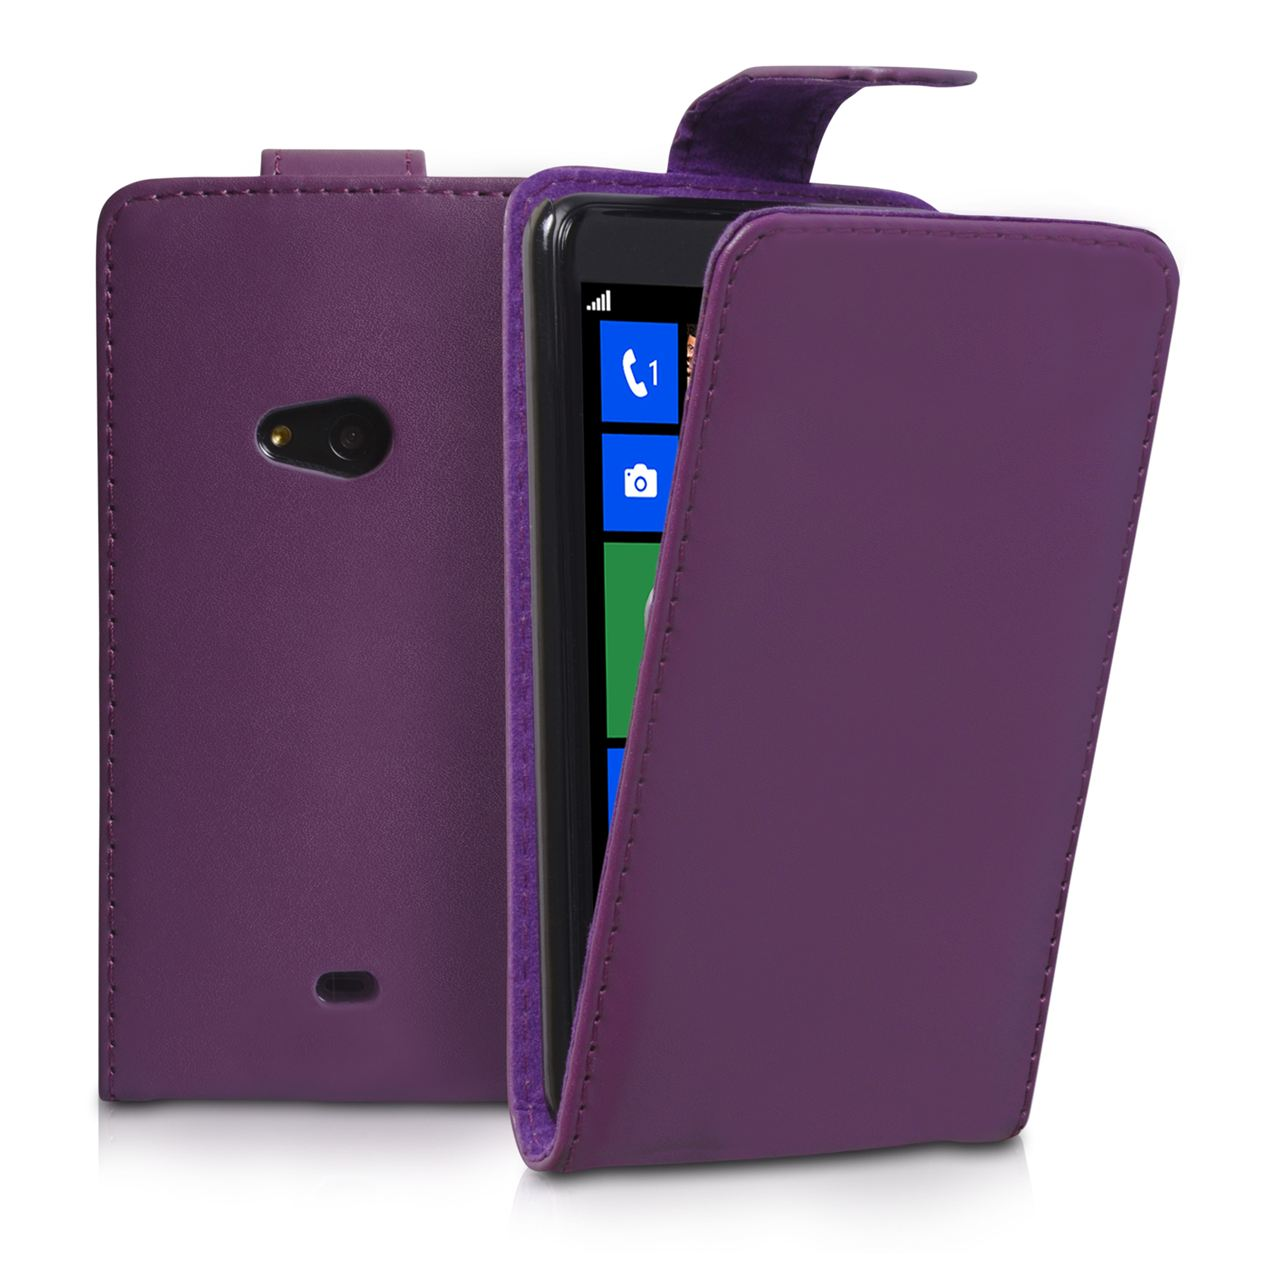 YouSave Accessories Nokia Lumia 625 Leather Effect Flip Case - Purple